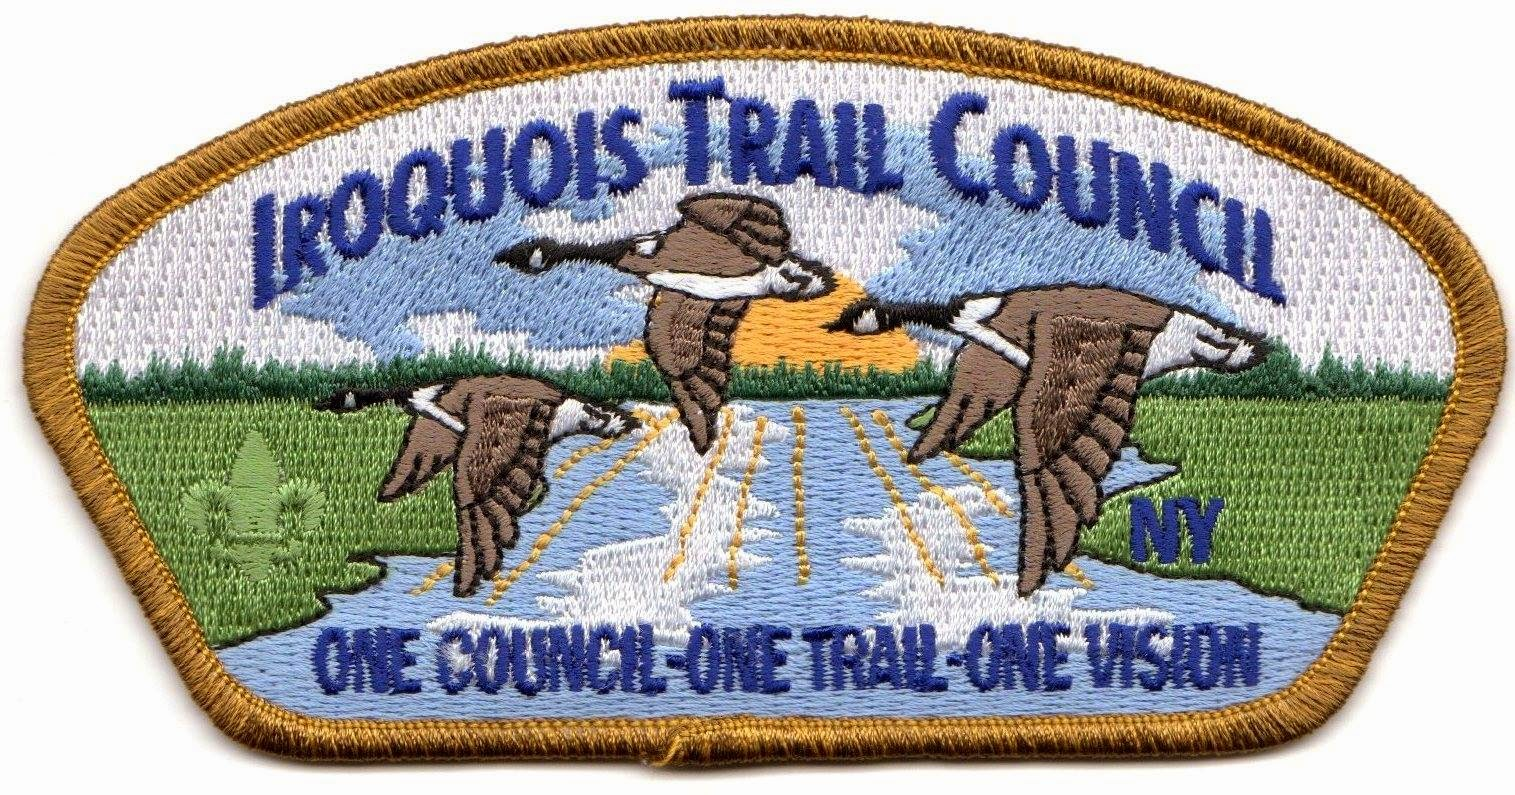 Iroquois Trail Council